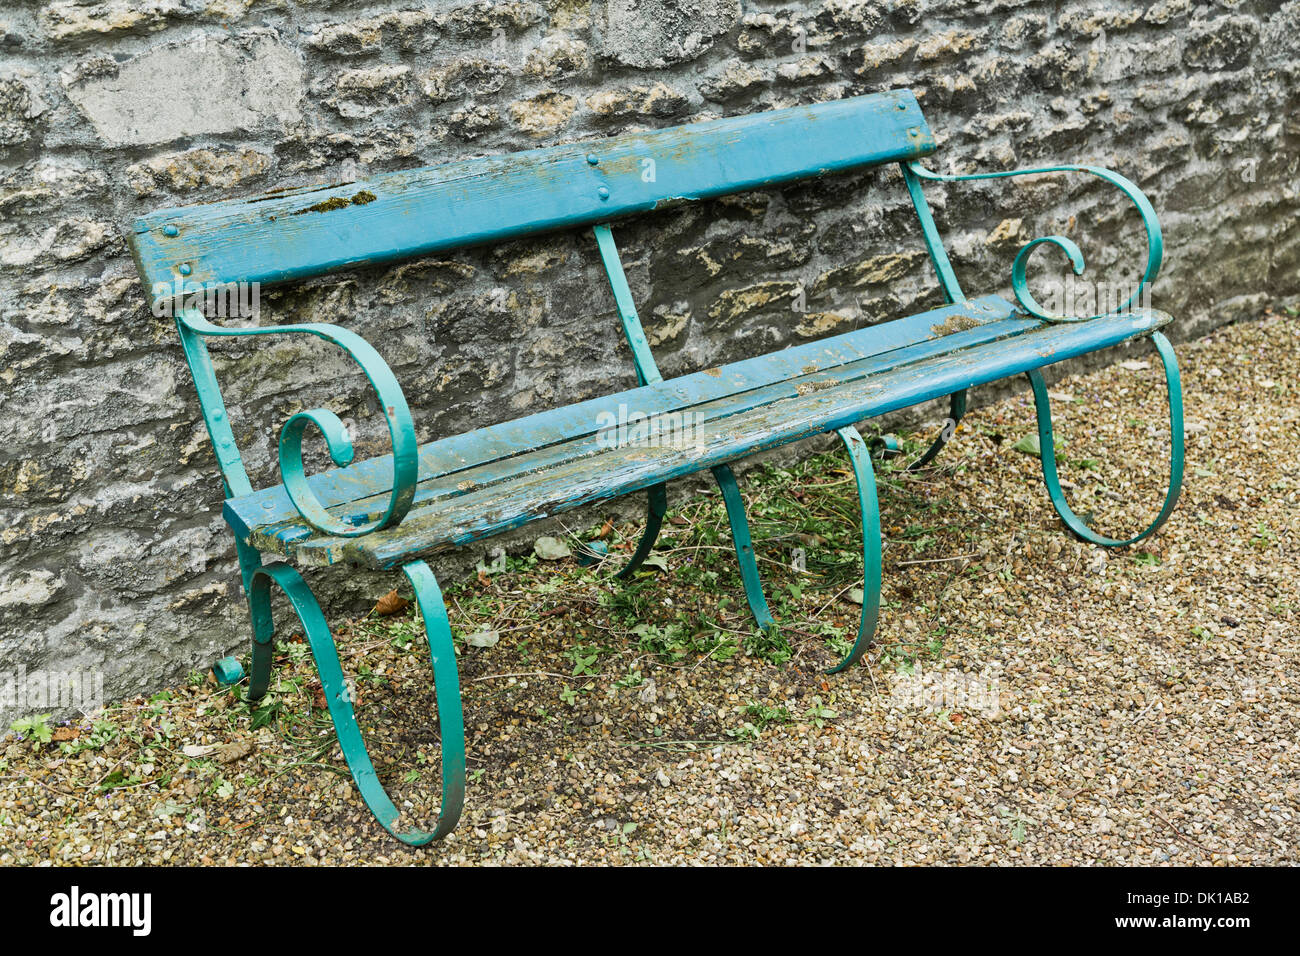 Picture of: Old Garden Bench With Wooden Slats And Cast Iron Frame Stock Photo Alamy